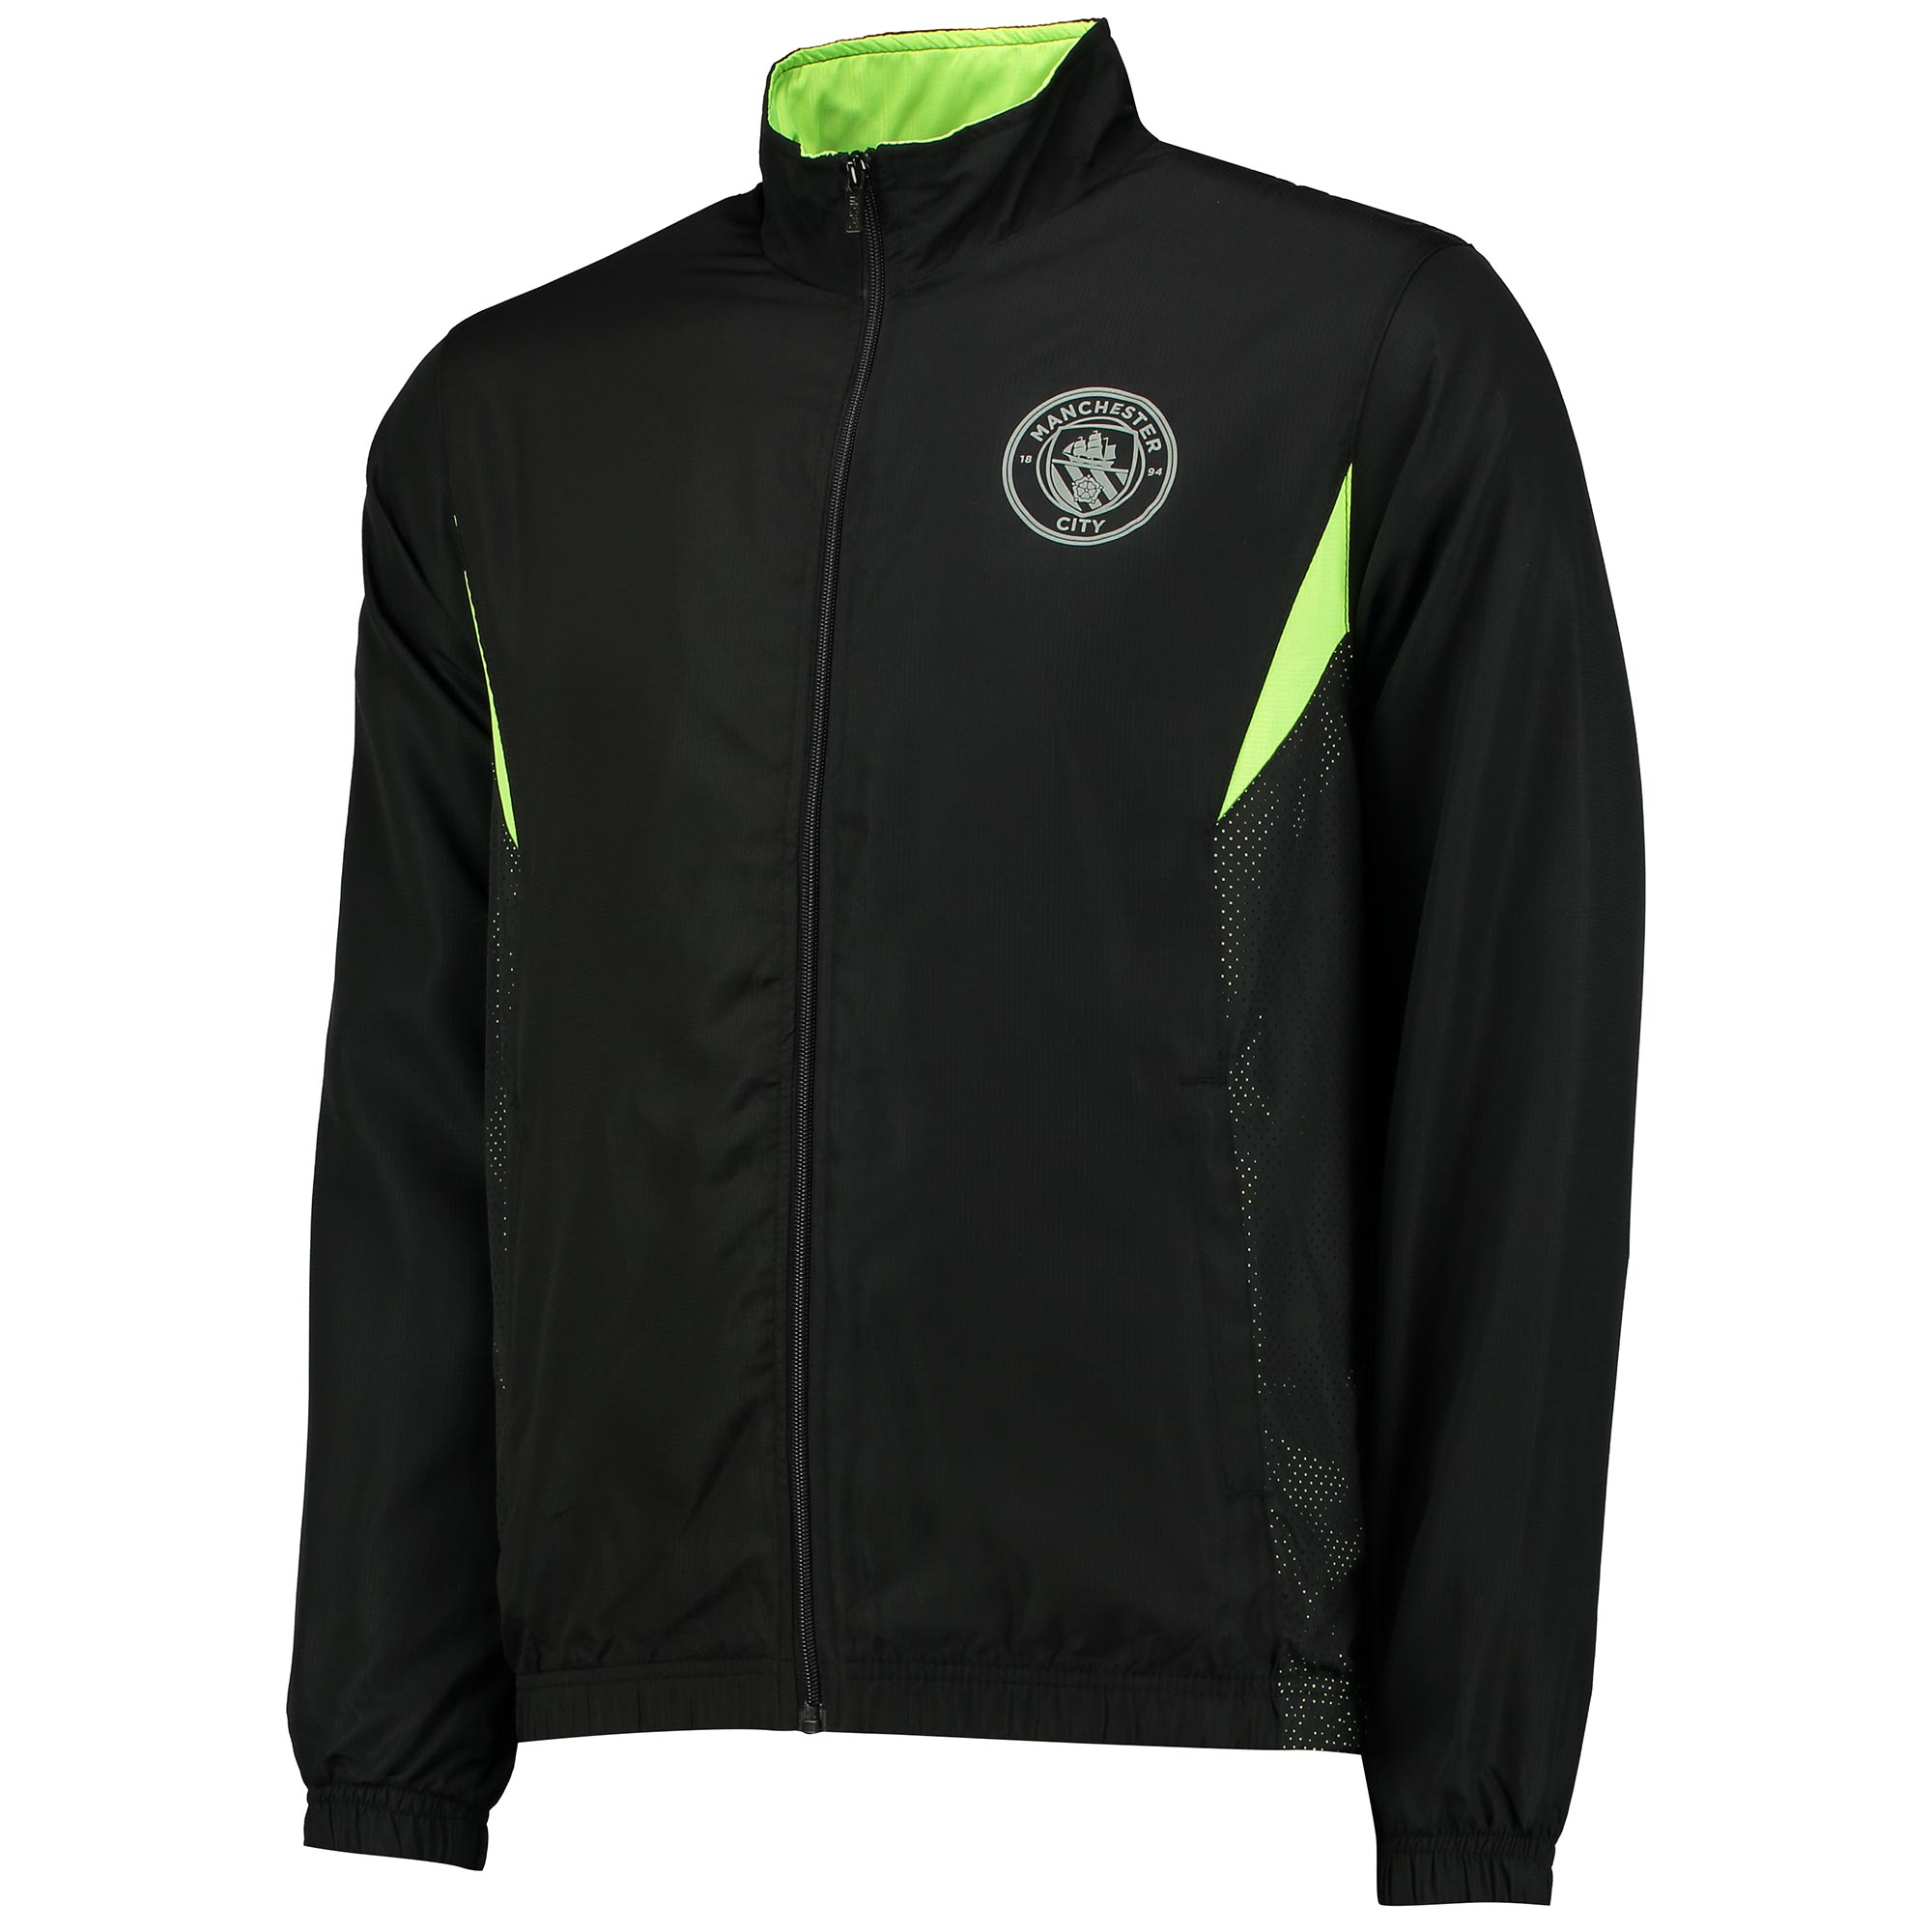 Manchester City Sport Woven Track Jacket - Black